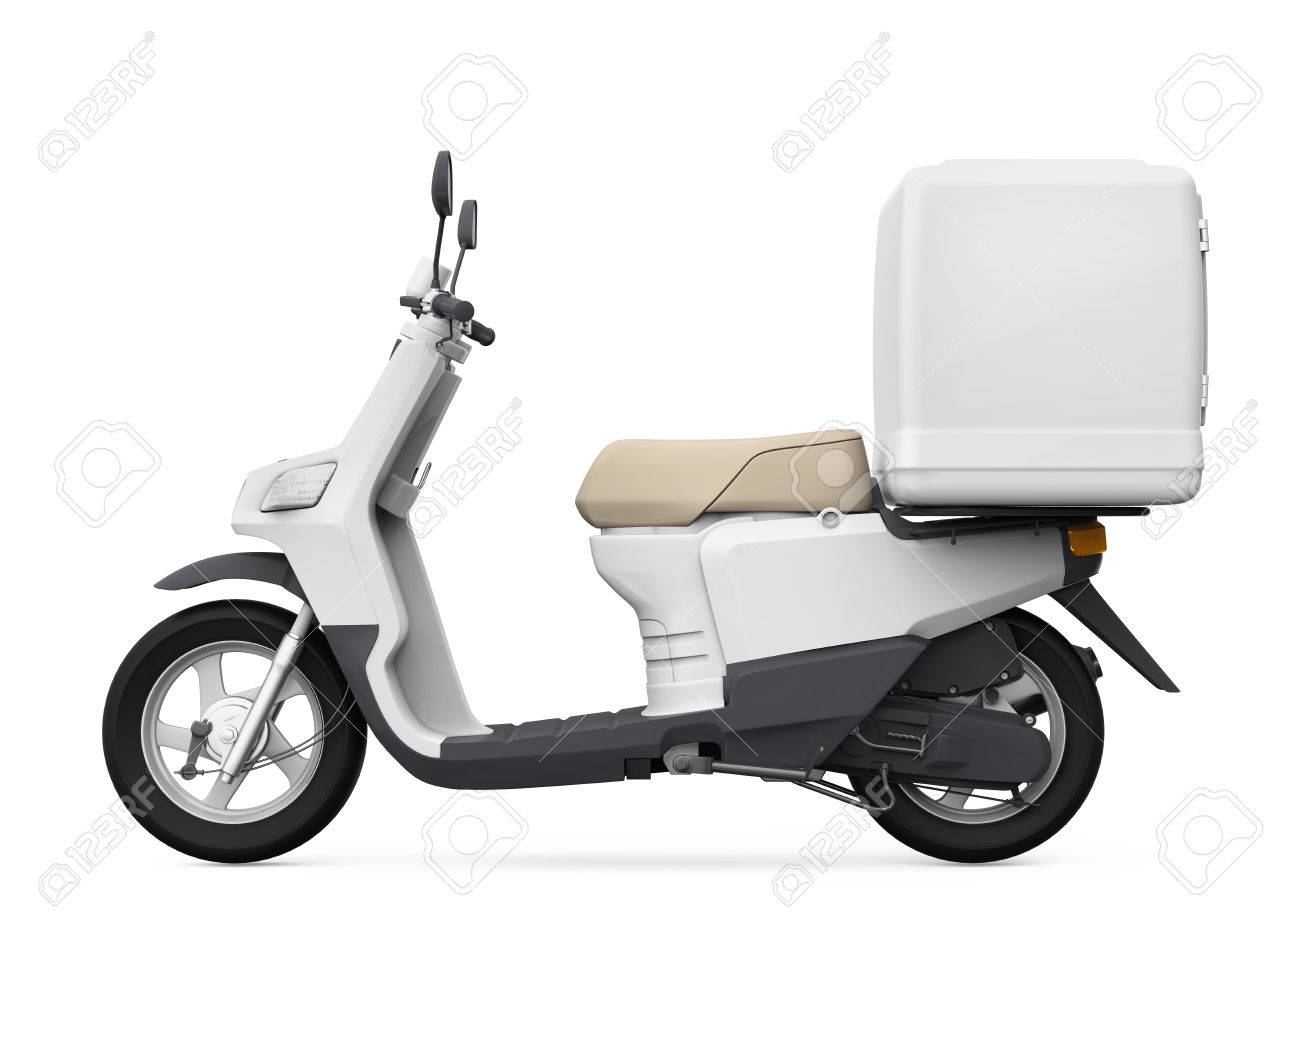 Motorcycle Delivery Box - 48466371